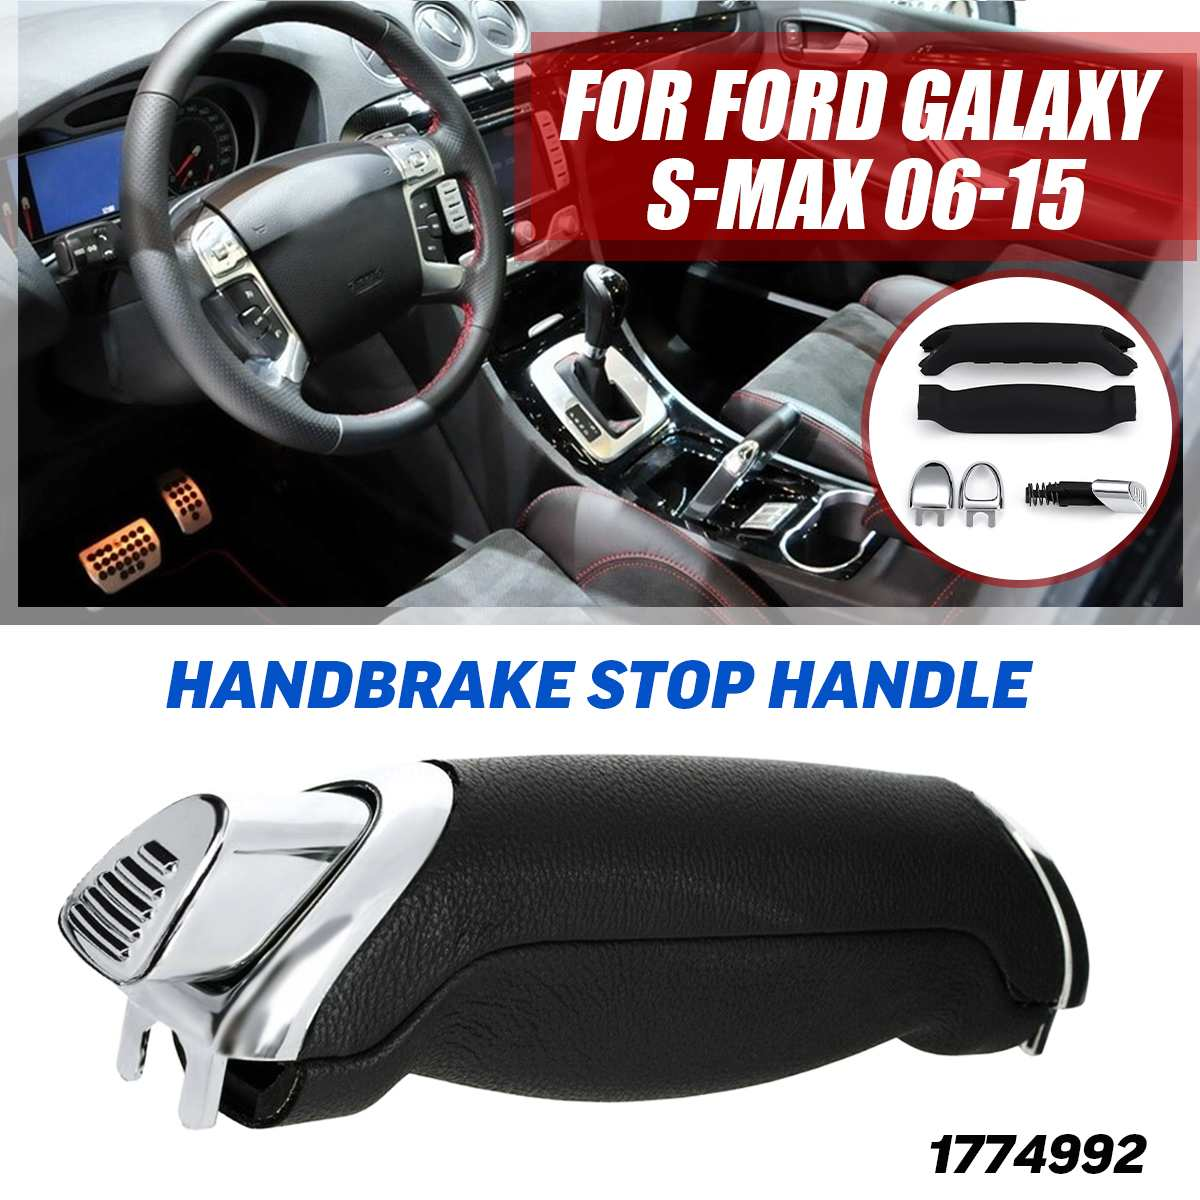 1 SET Parking Handbrake Stop Handle Lever Kit 1774992 For Ford For Galaxy For S-MAX 2006-2015